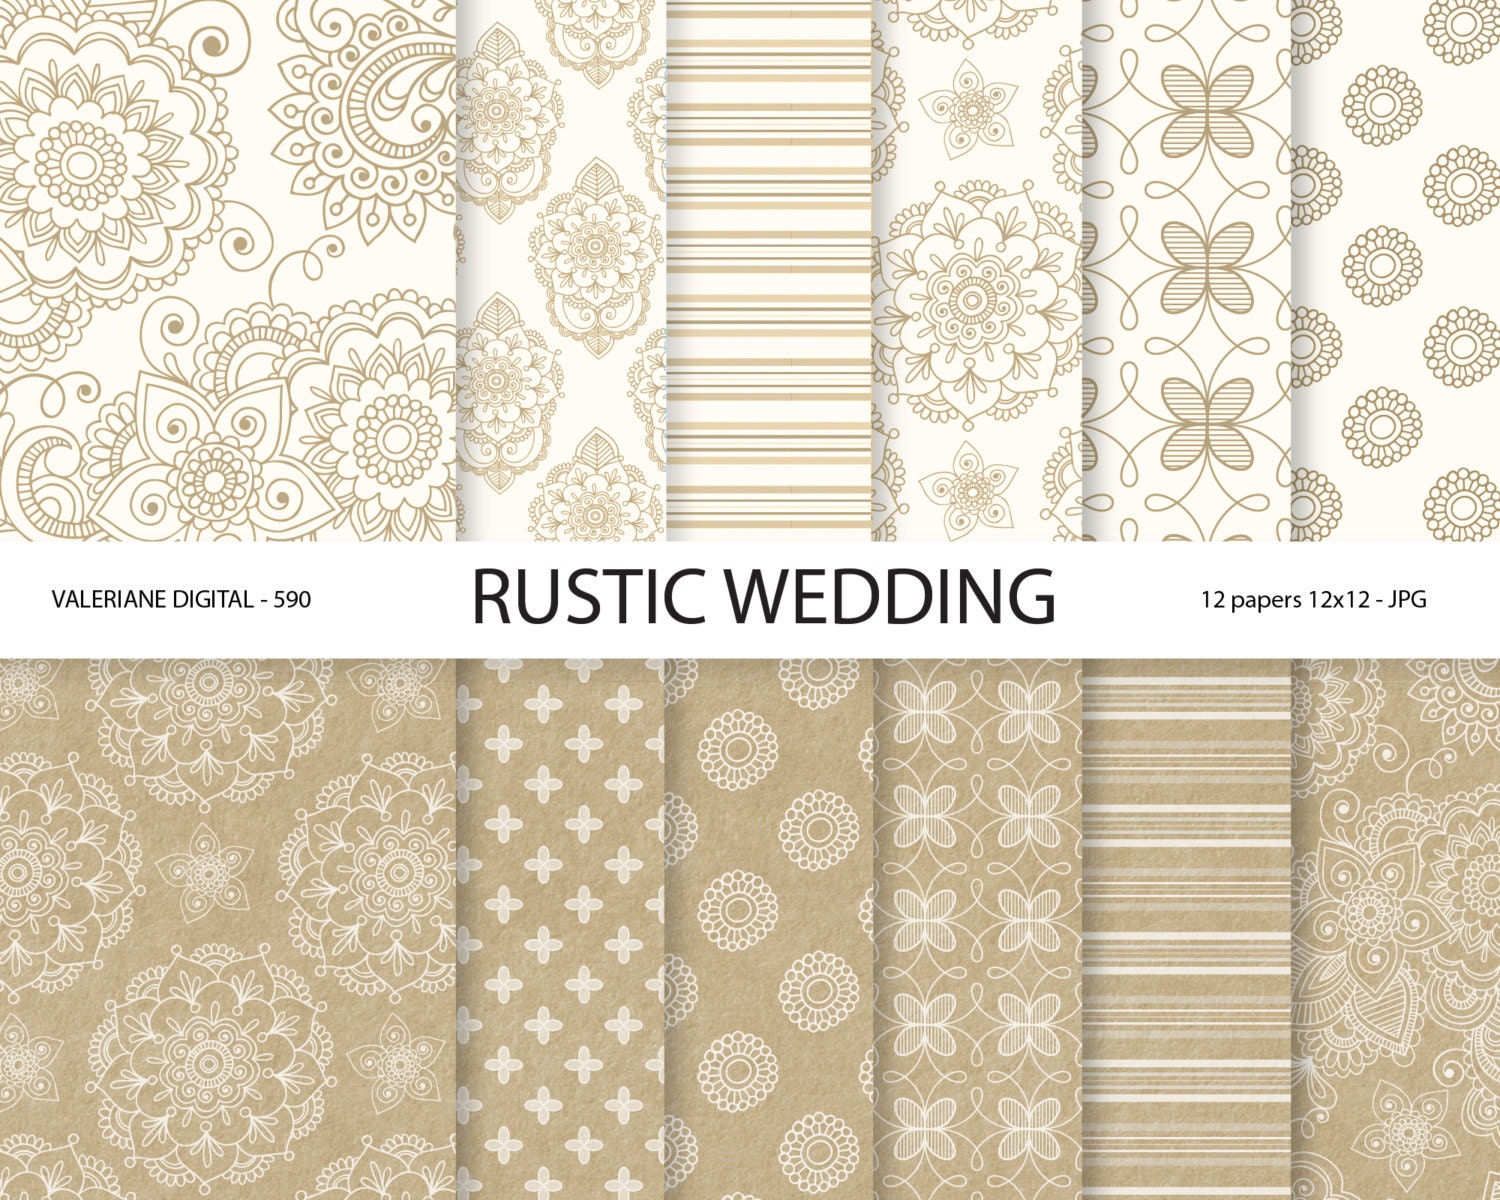 12x12 wedding scrapbook paper - This Is A Digital File